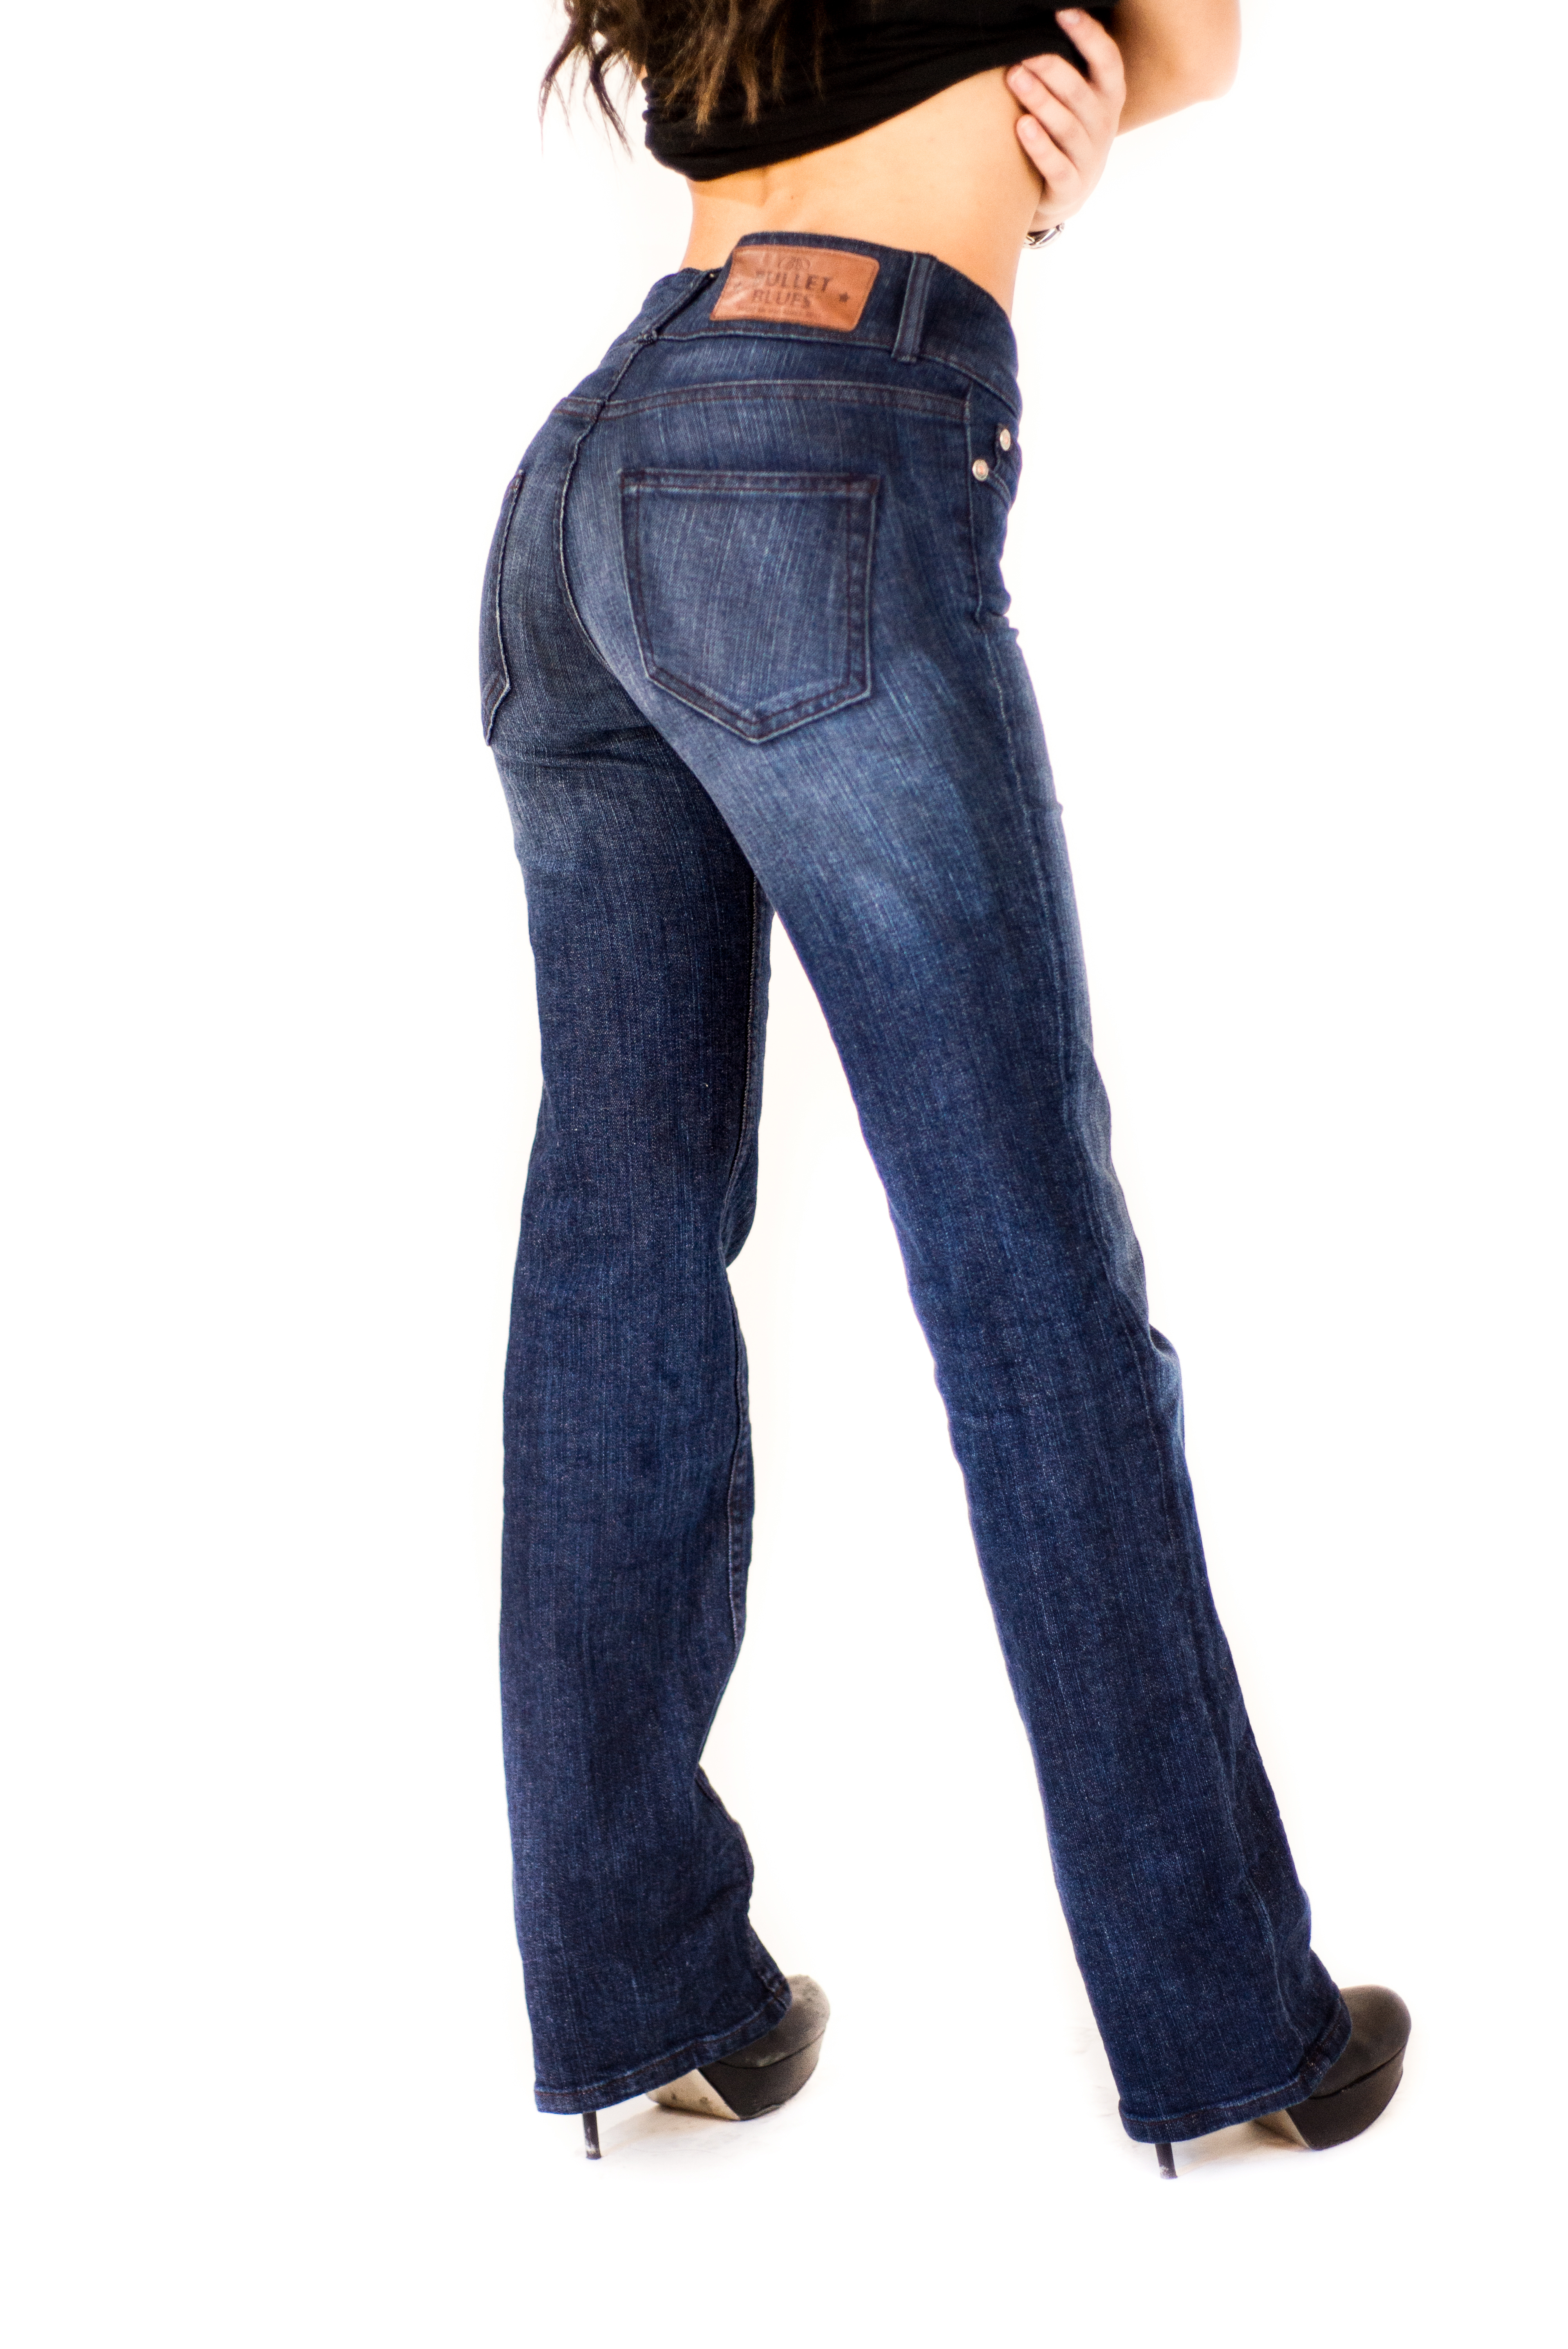 Jeans And Apparel Made In Usa Gifts For The American Mother